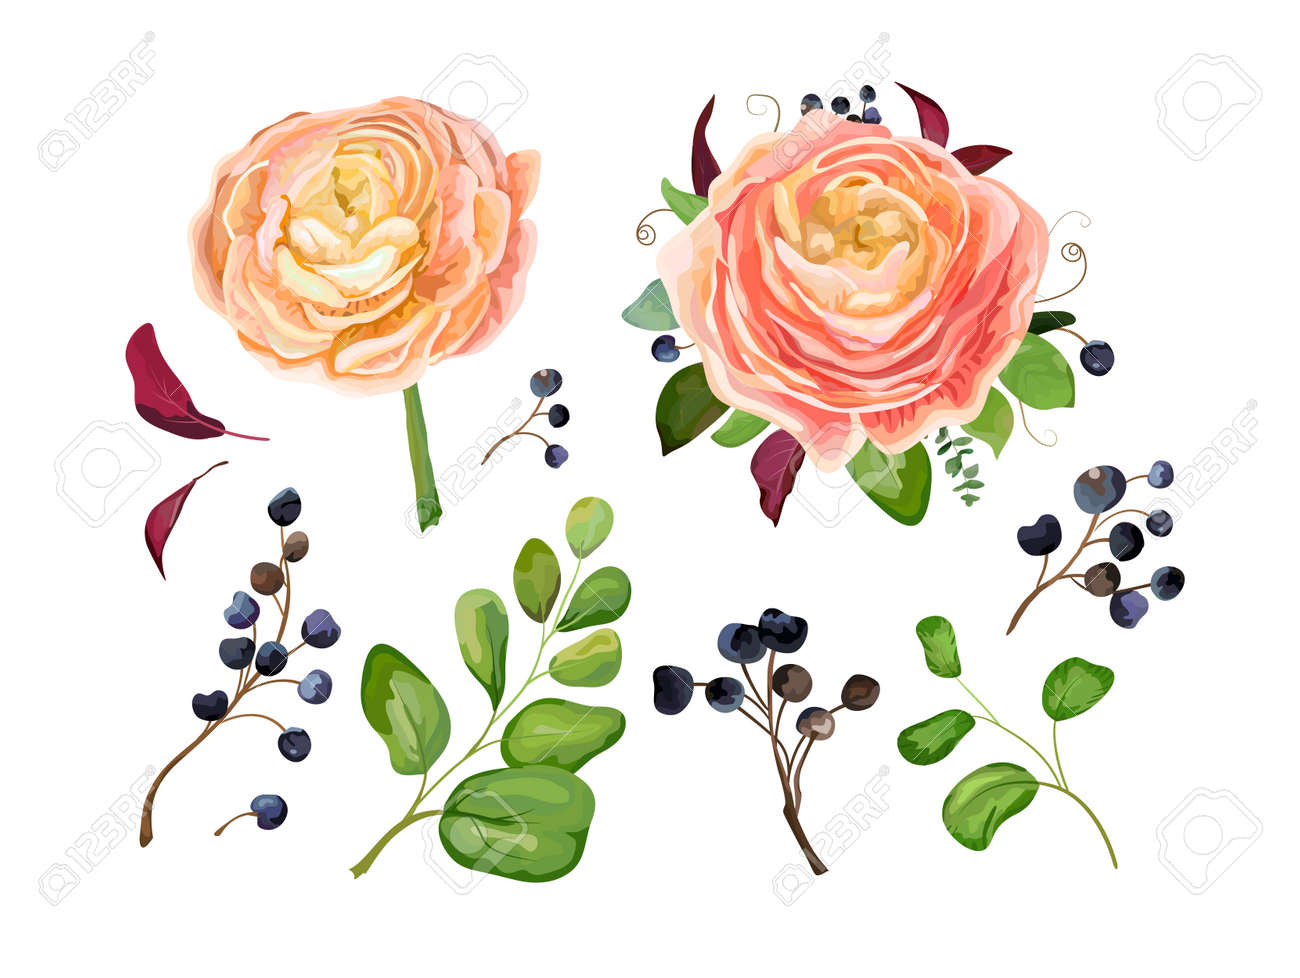 Vector floral big element set pink peach ranunculus flower bouquet vector vector floral big element set pink peach ranunculus flower bouquet blue berry branch forest fern tree fall leaves art foliage objects in mightylinksfo